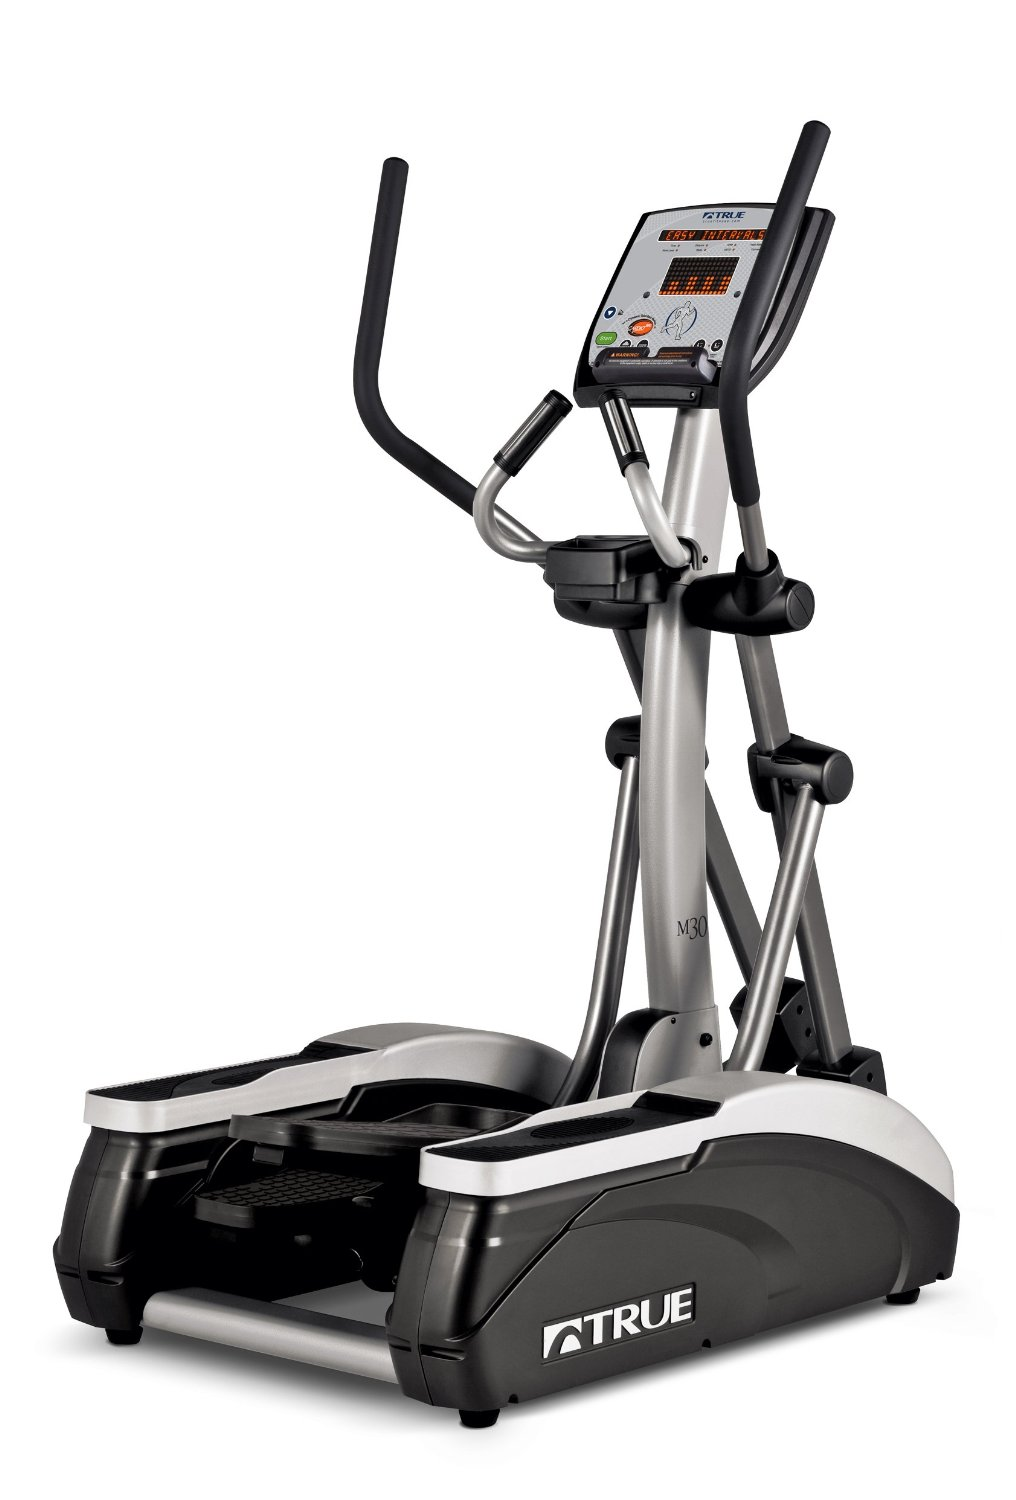 Space Saving TRUE M30 Elliptical